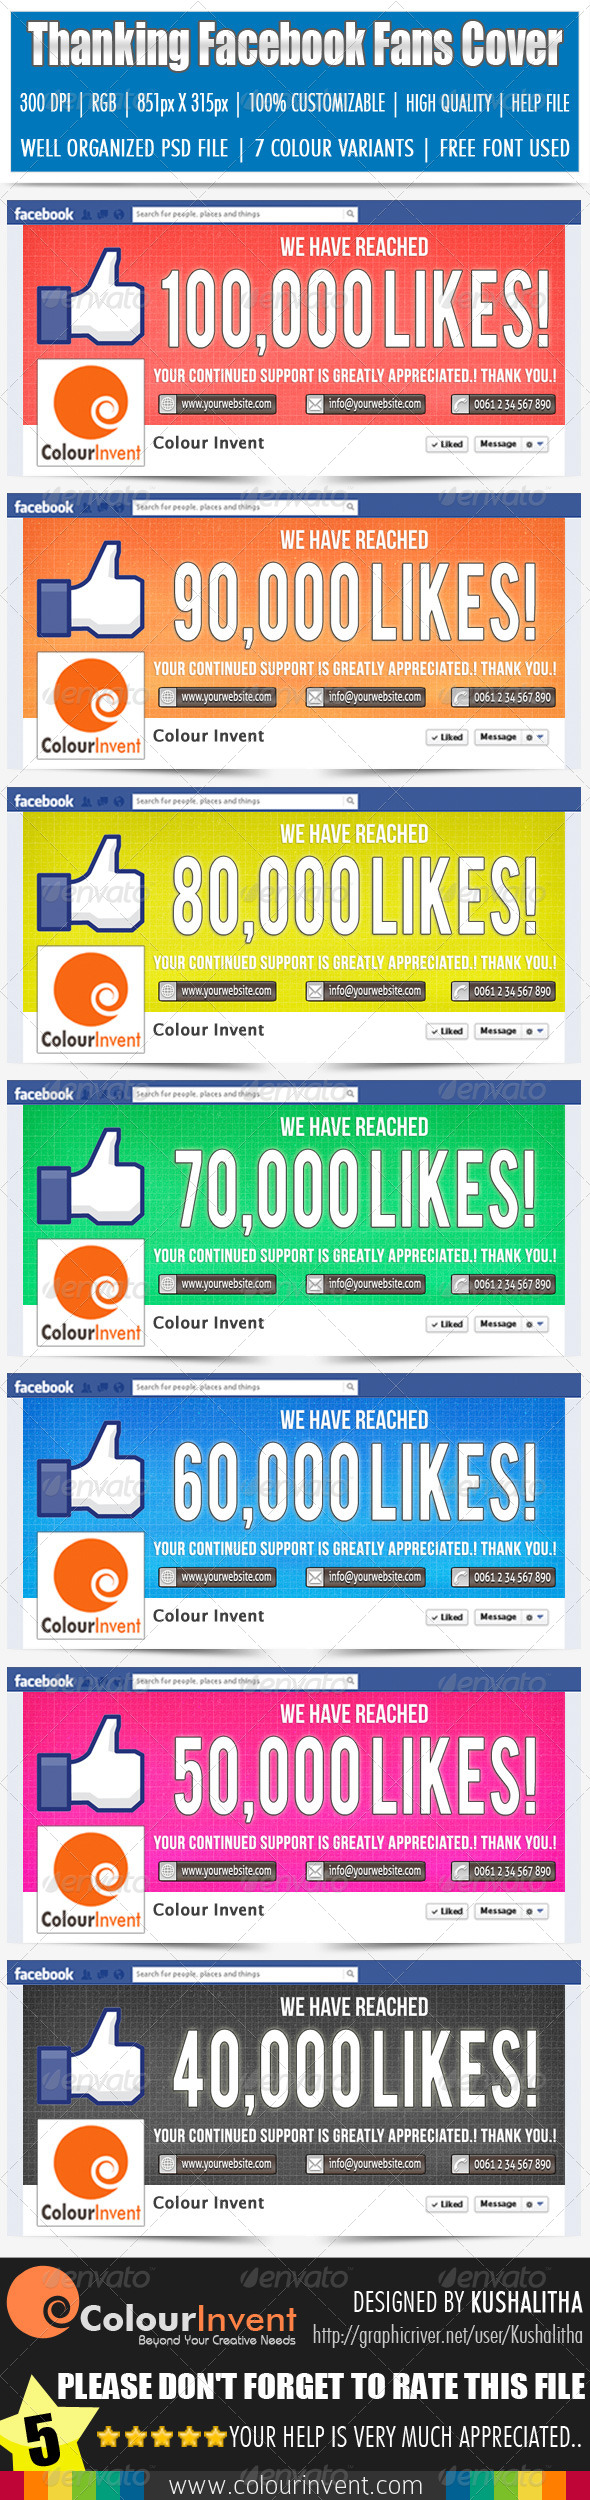 GraphicRiver Thanking Facebook Fans Cover 4571478